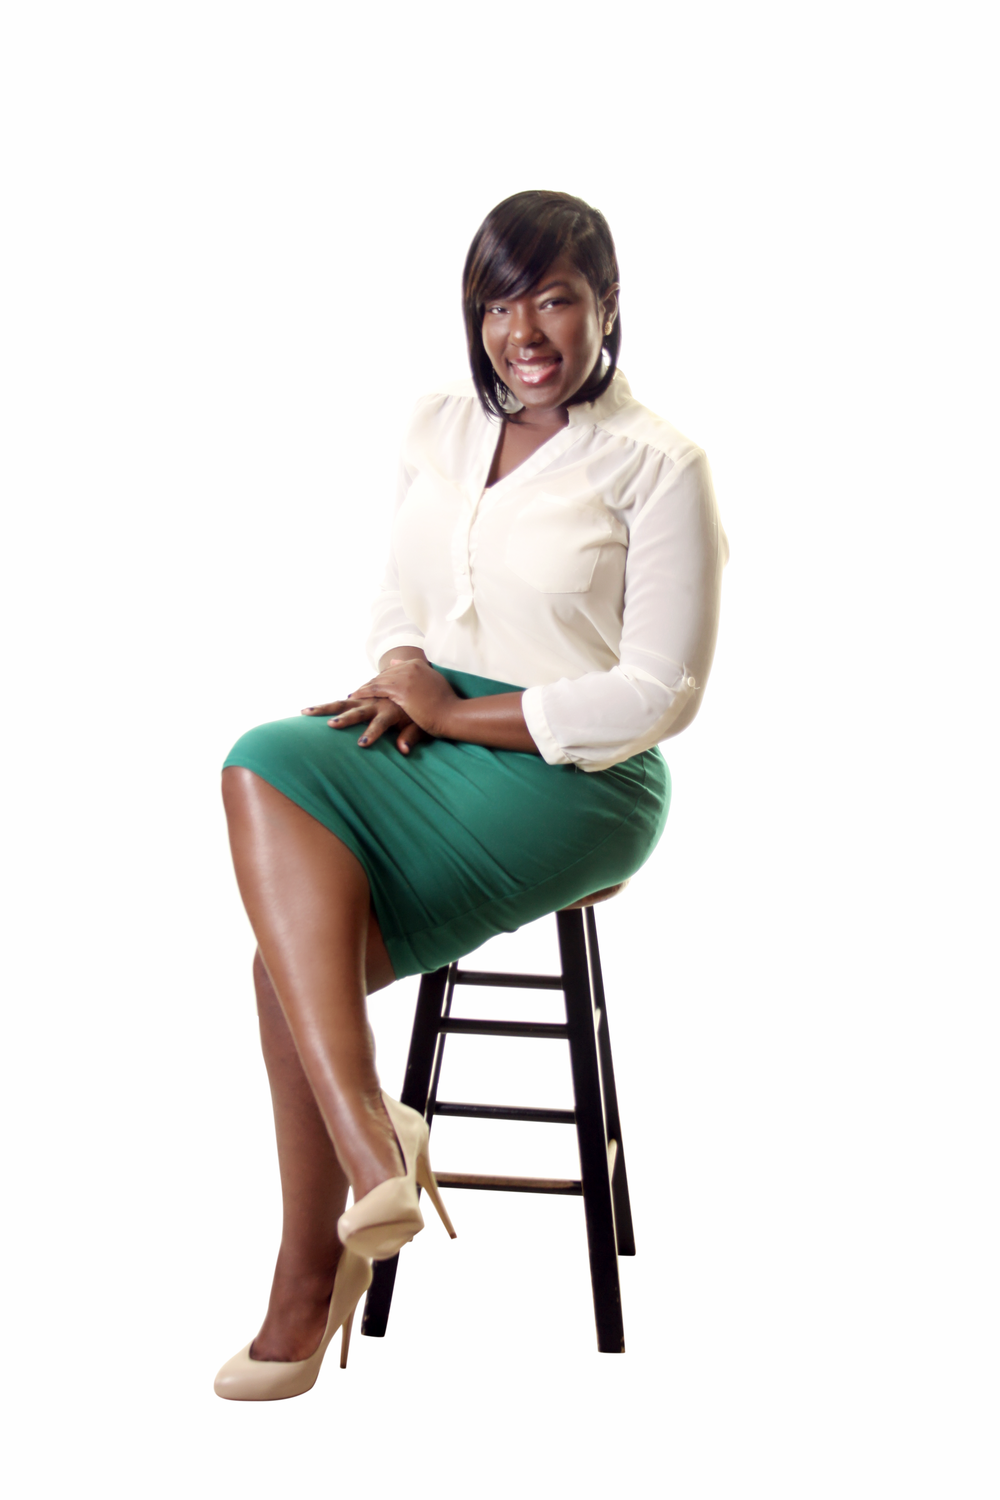 Shakeema Hughes - Author, Personal Finance Educator, and Your Credit Agent.  Founder and CEO of She Evolve LLC